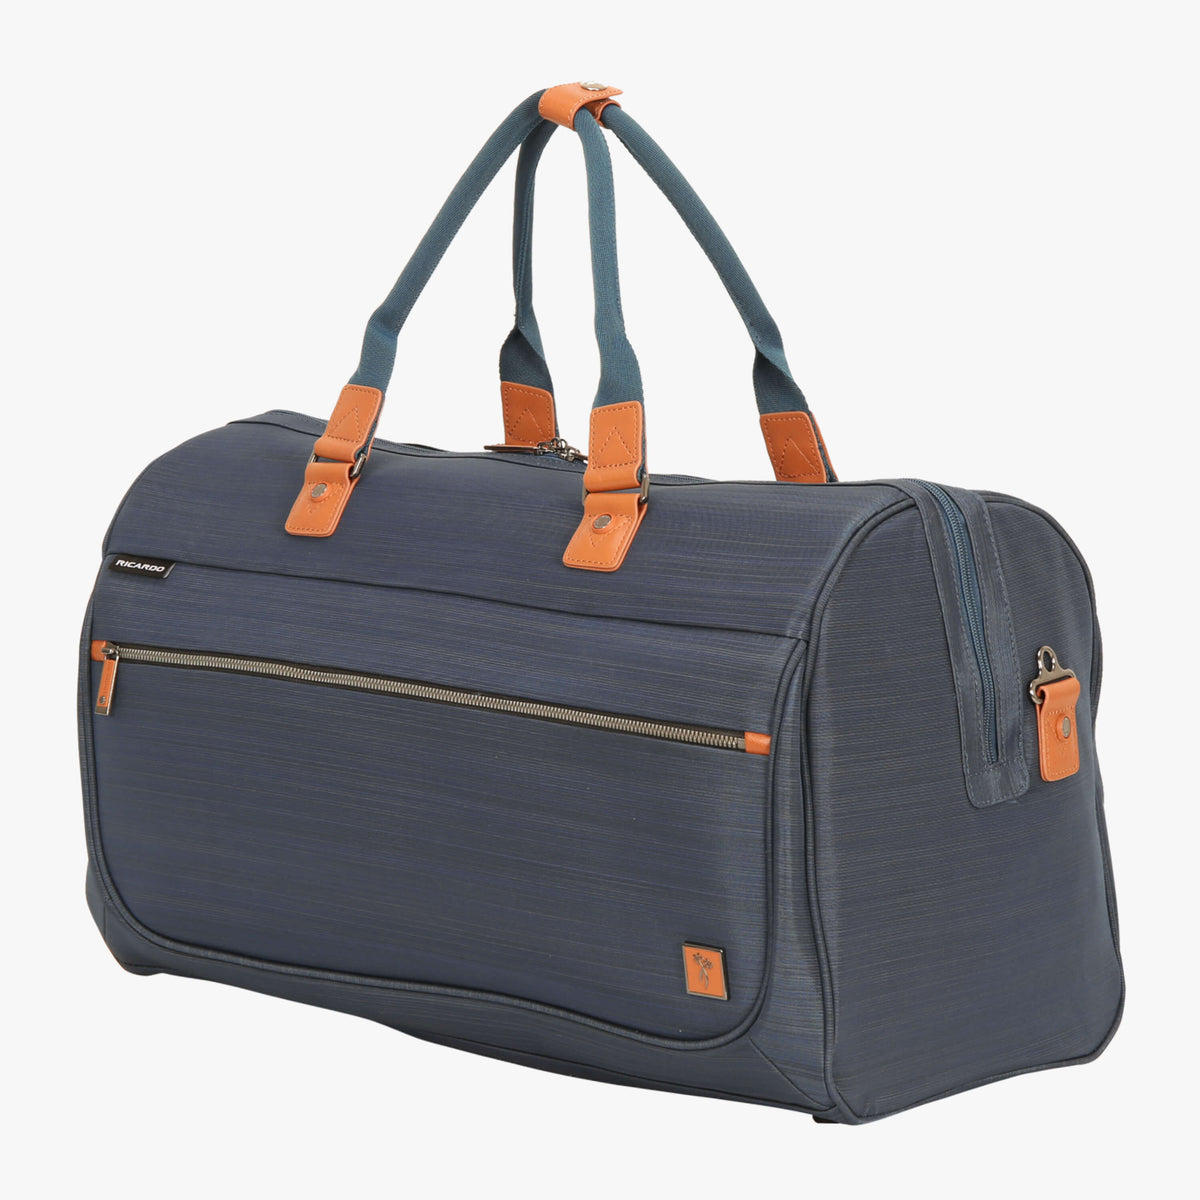 e81463c5c5 Duffel Ricardo Beverly Hills 20-Inch Duffel in Midnight Teal in in  Color Midnight ...